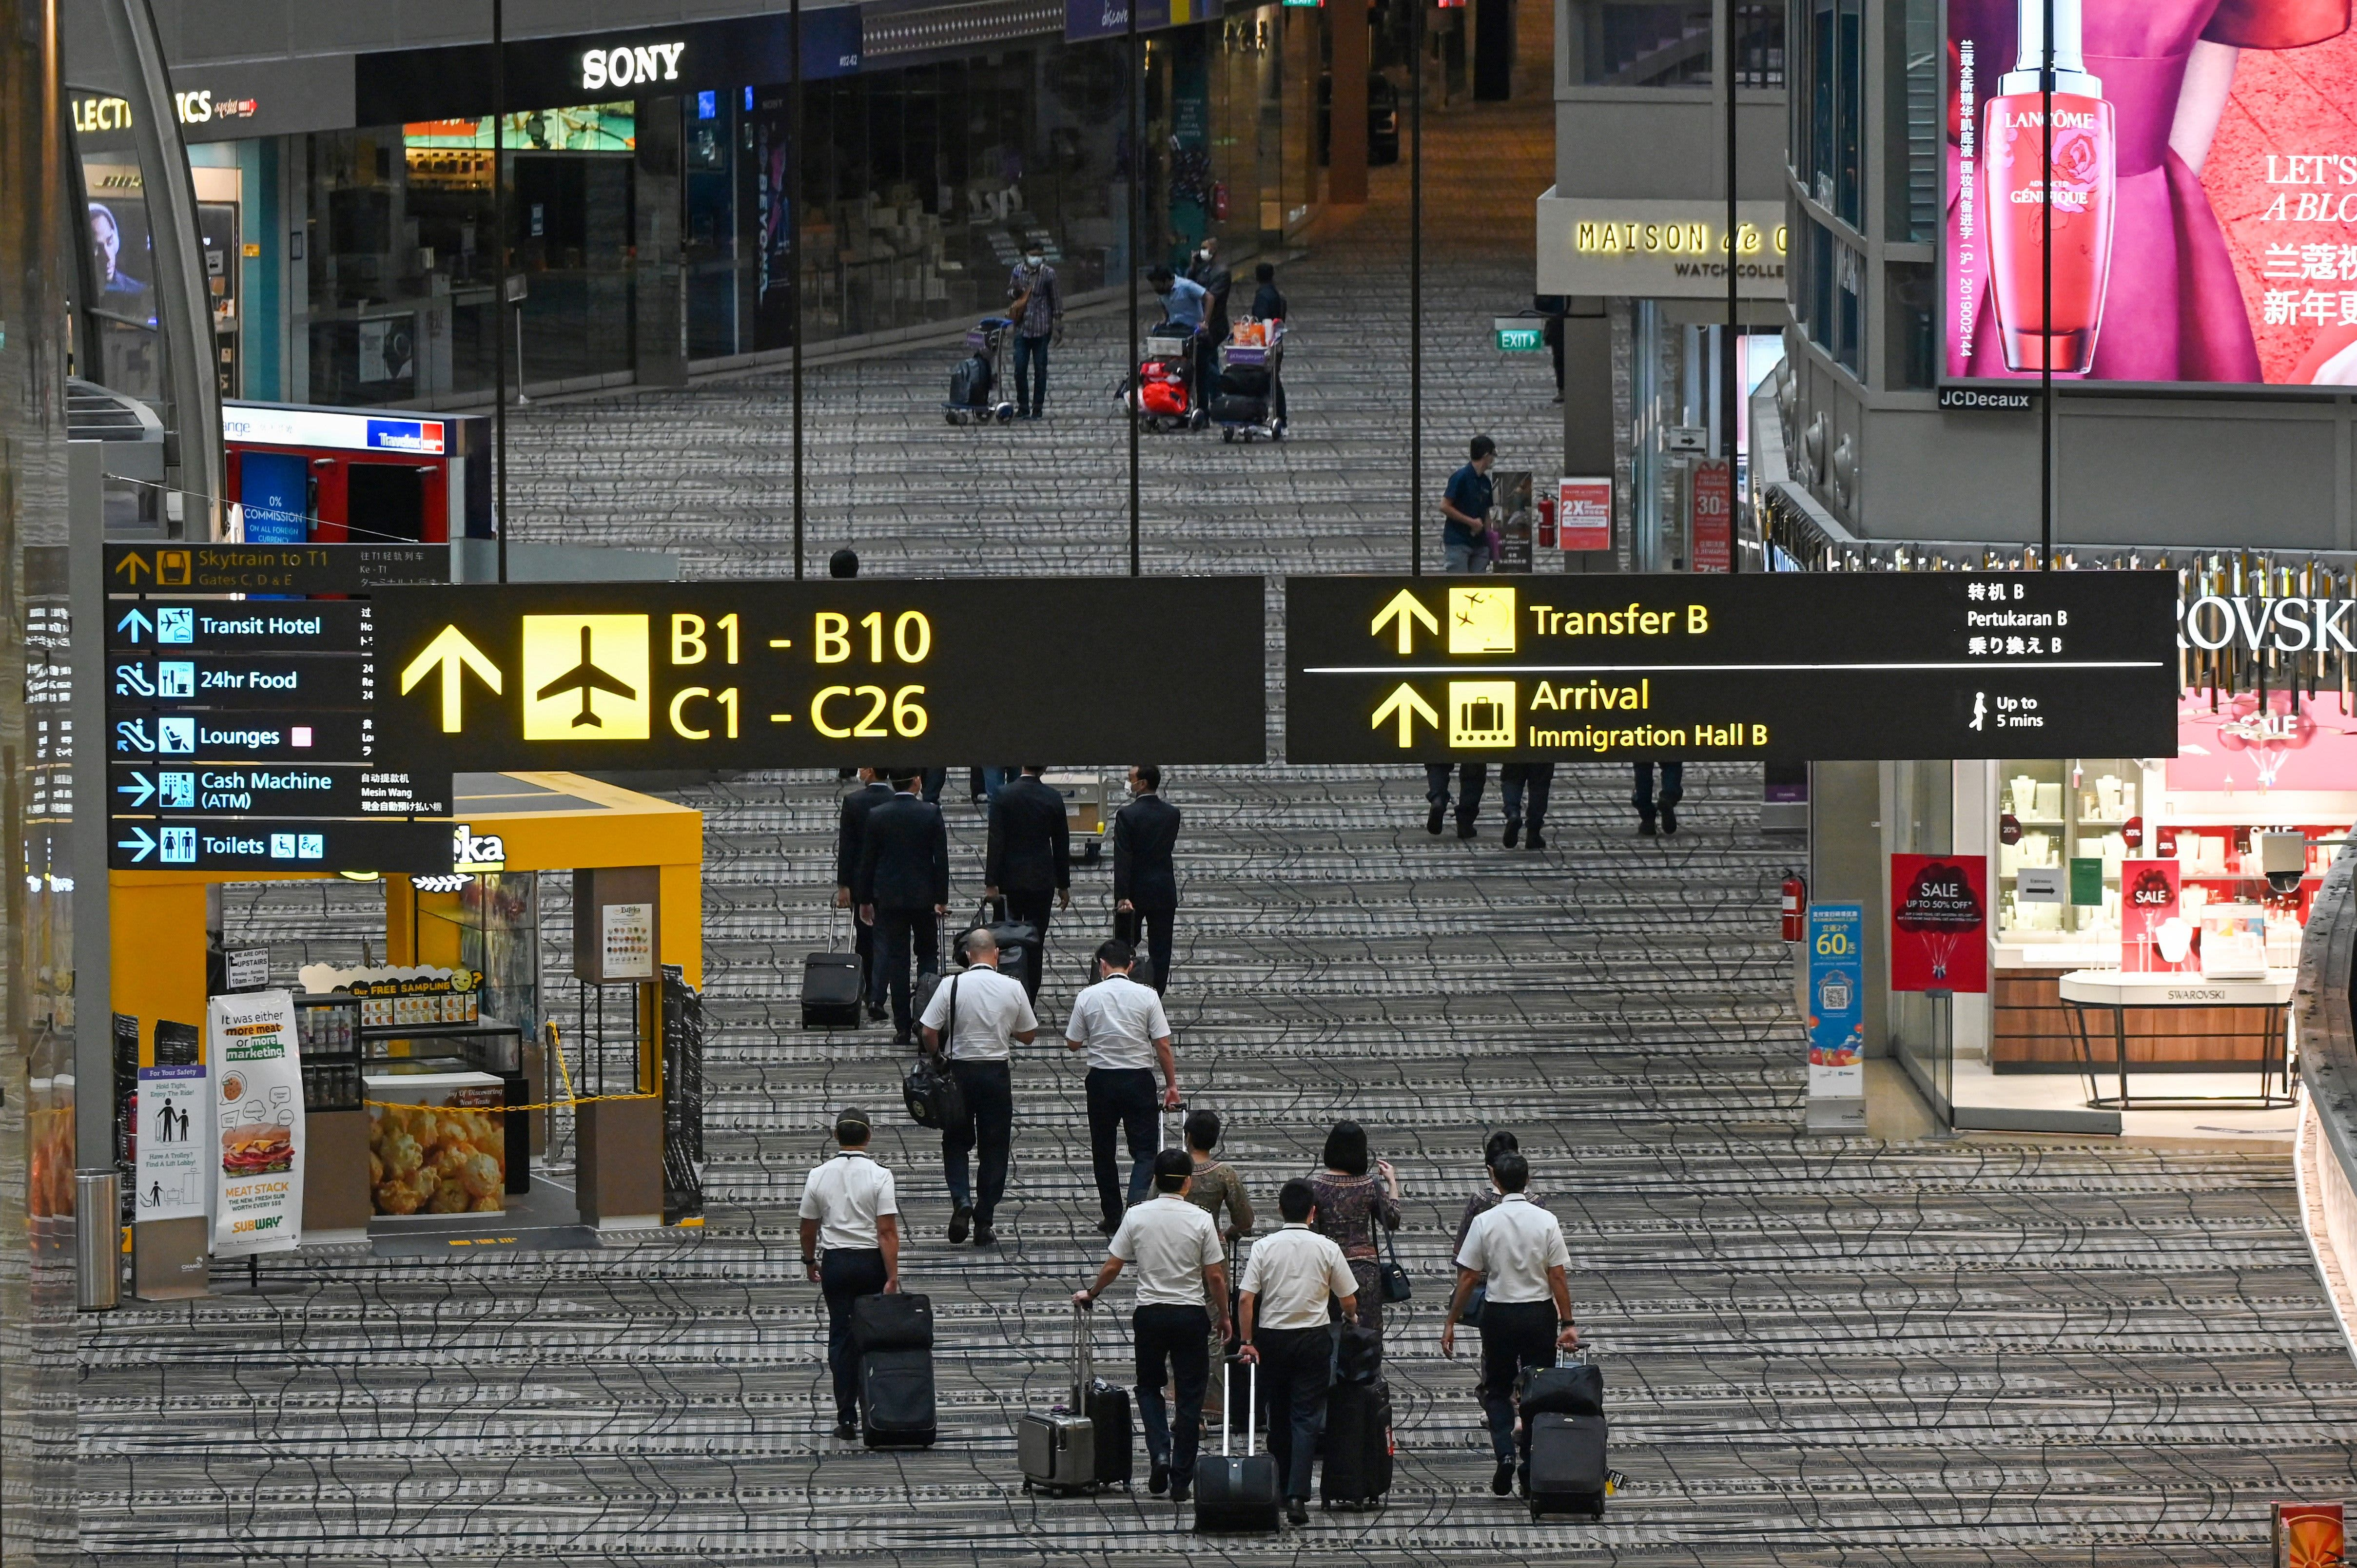 Singapore hasn't given up on air travel bubble with Hong Kong, says minister